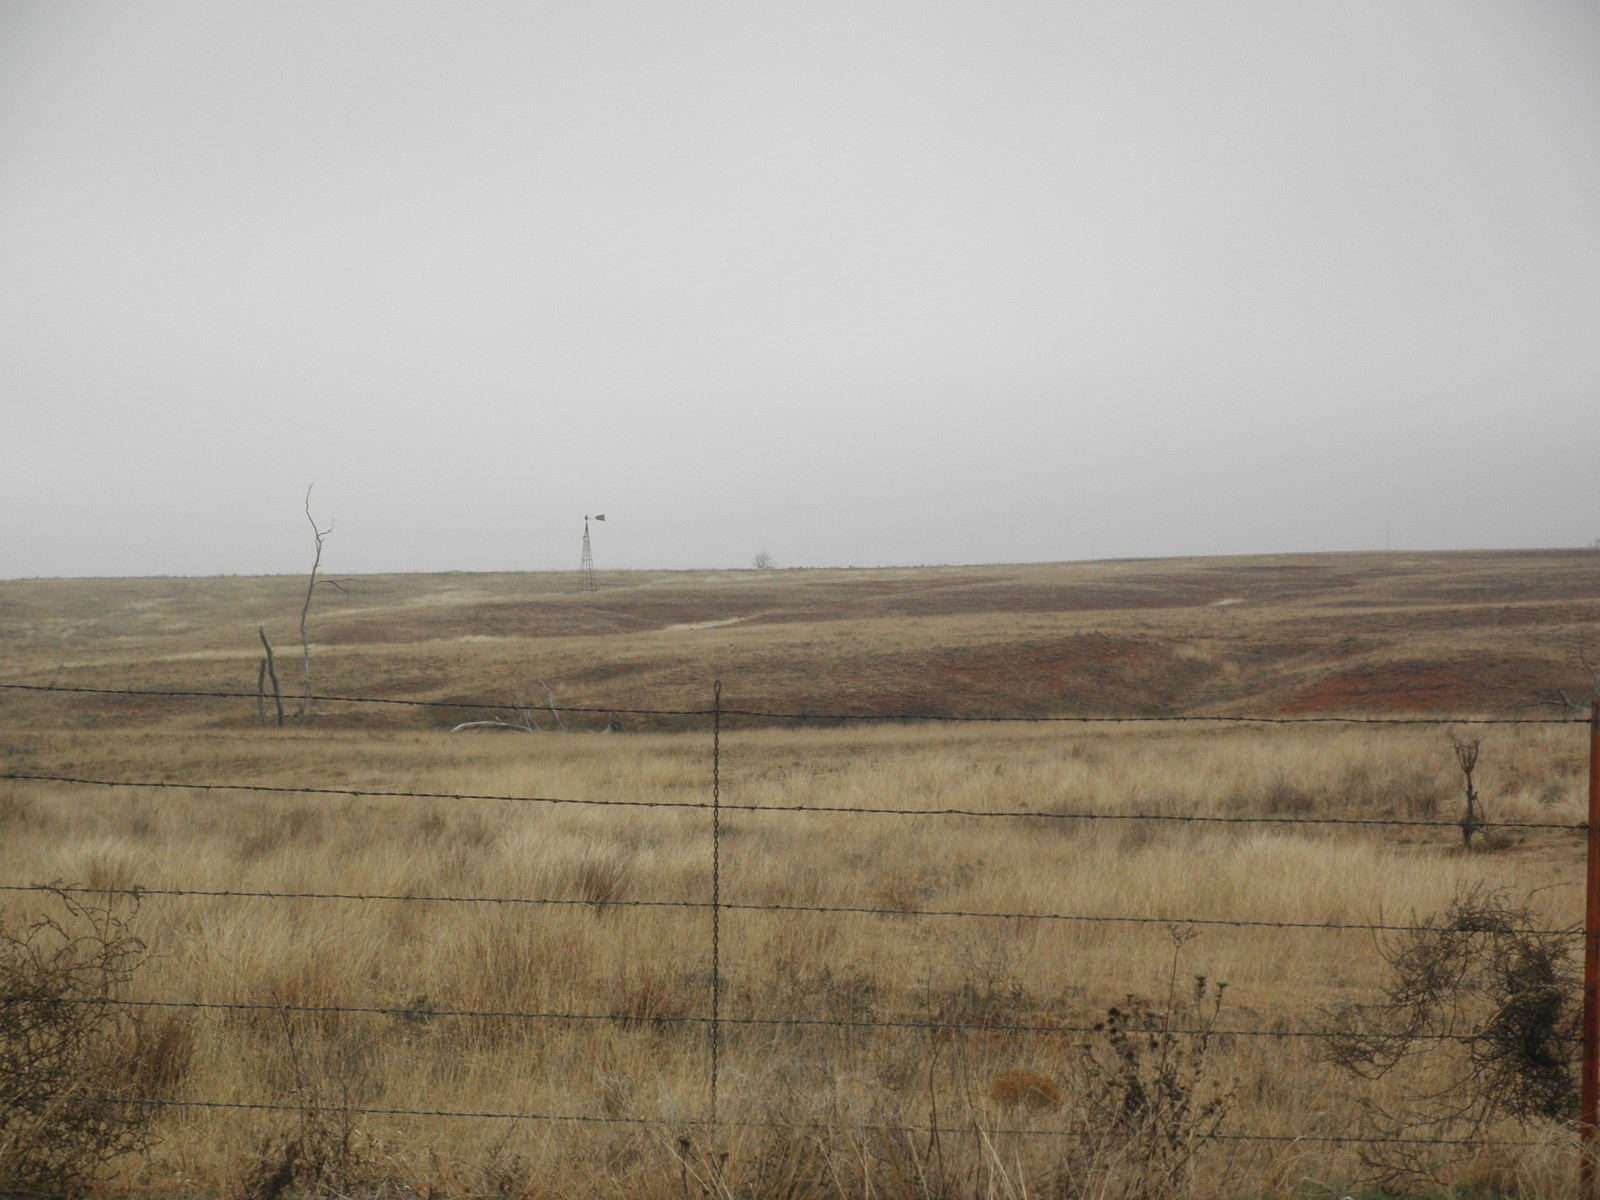 LAND FOR SALE NEAR SENTINEL IN WESTERN OKLAHOMA